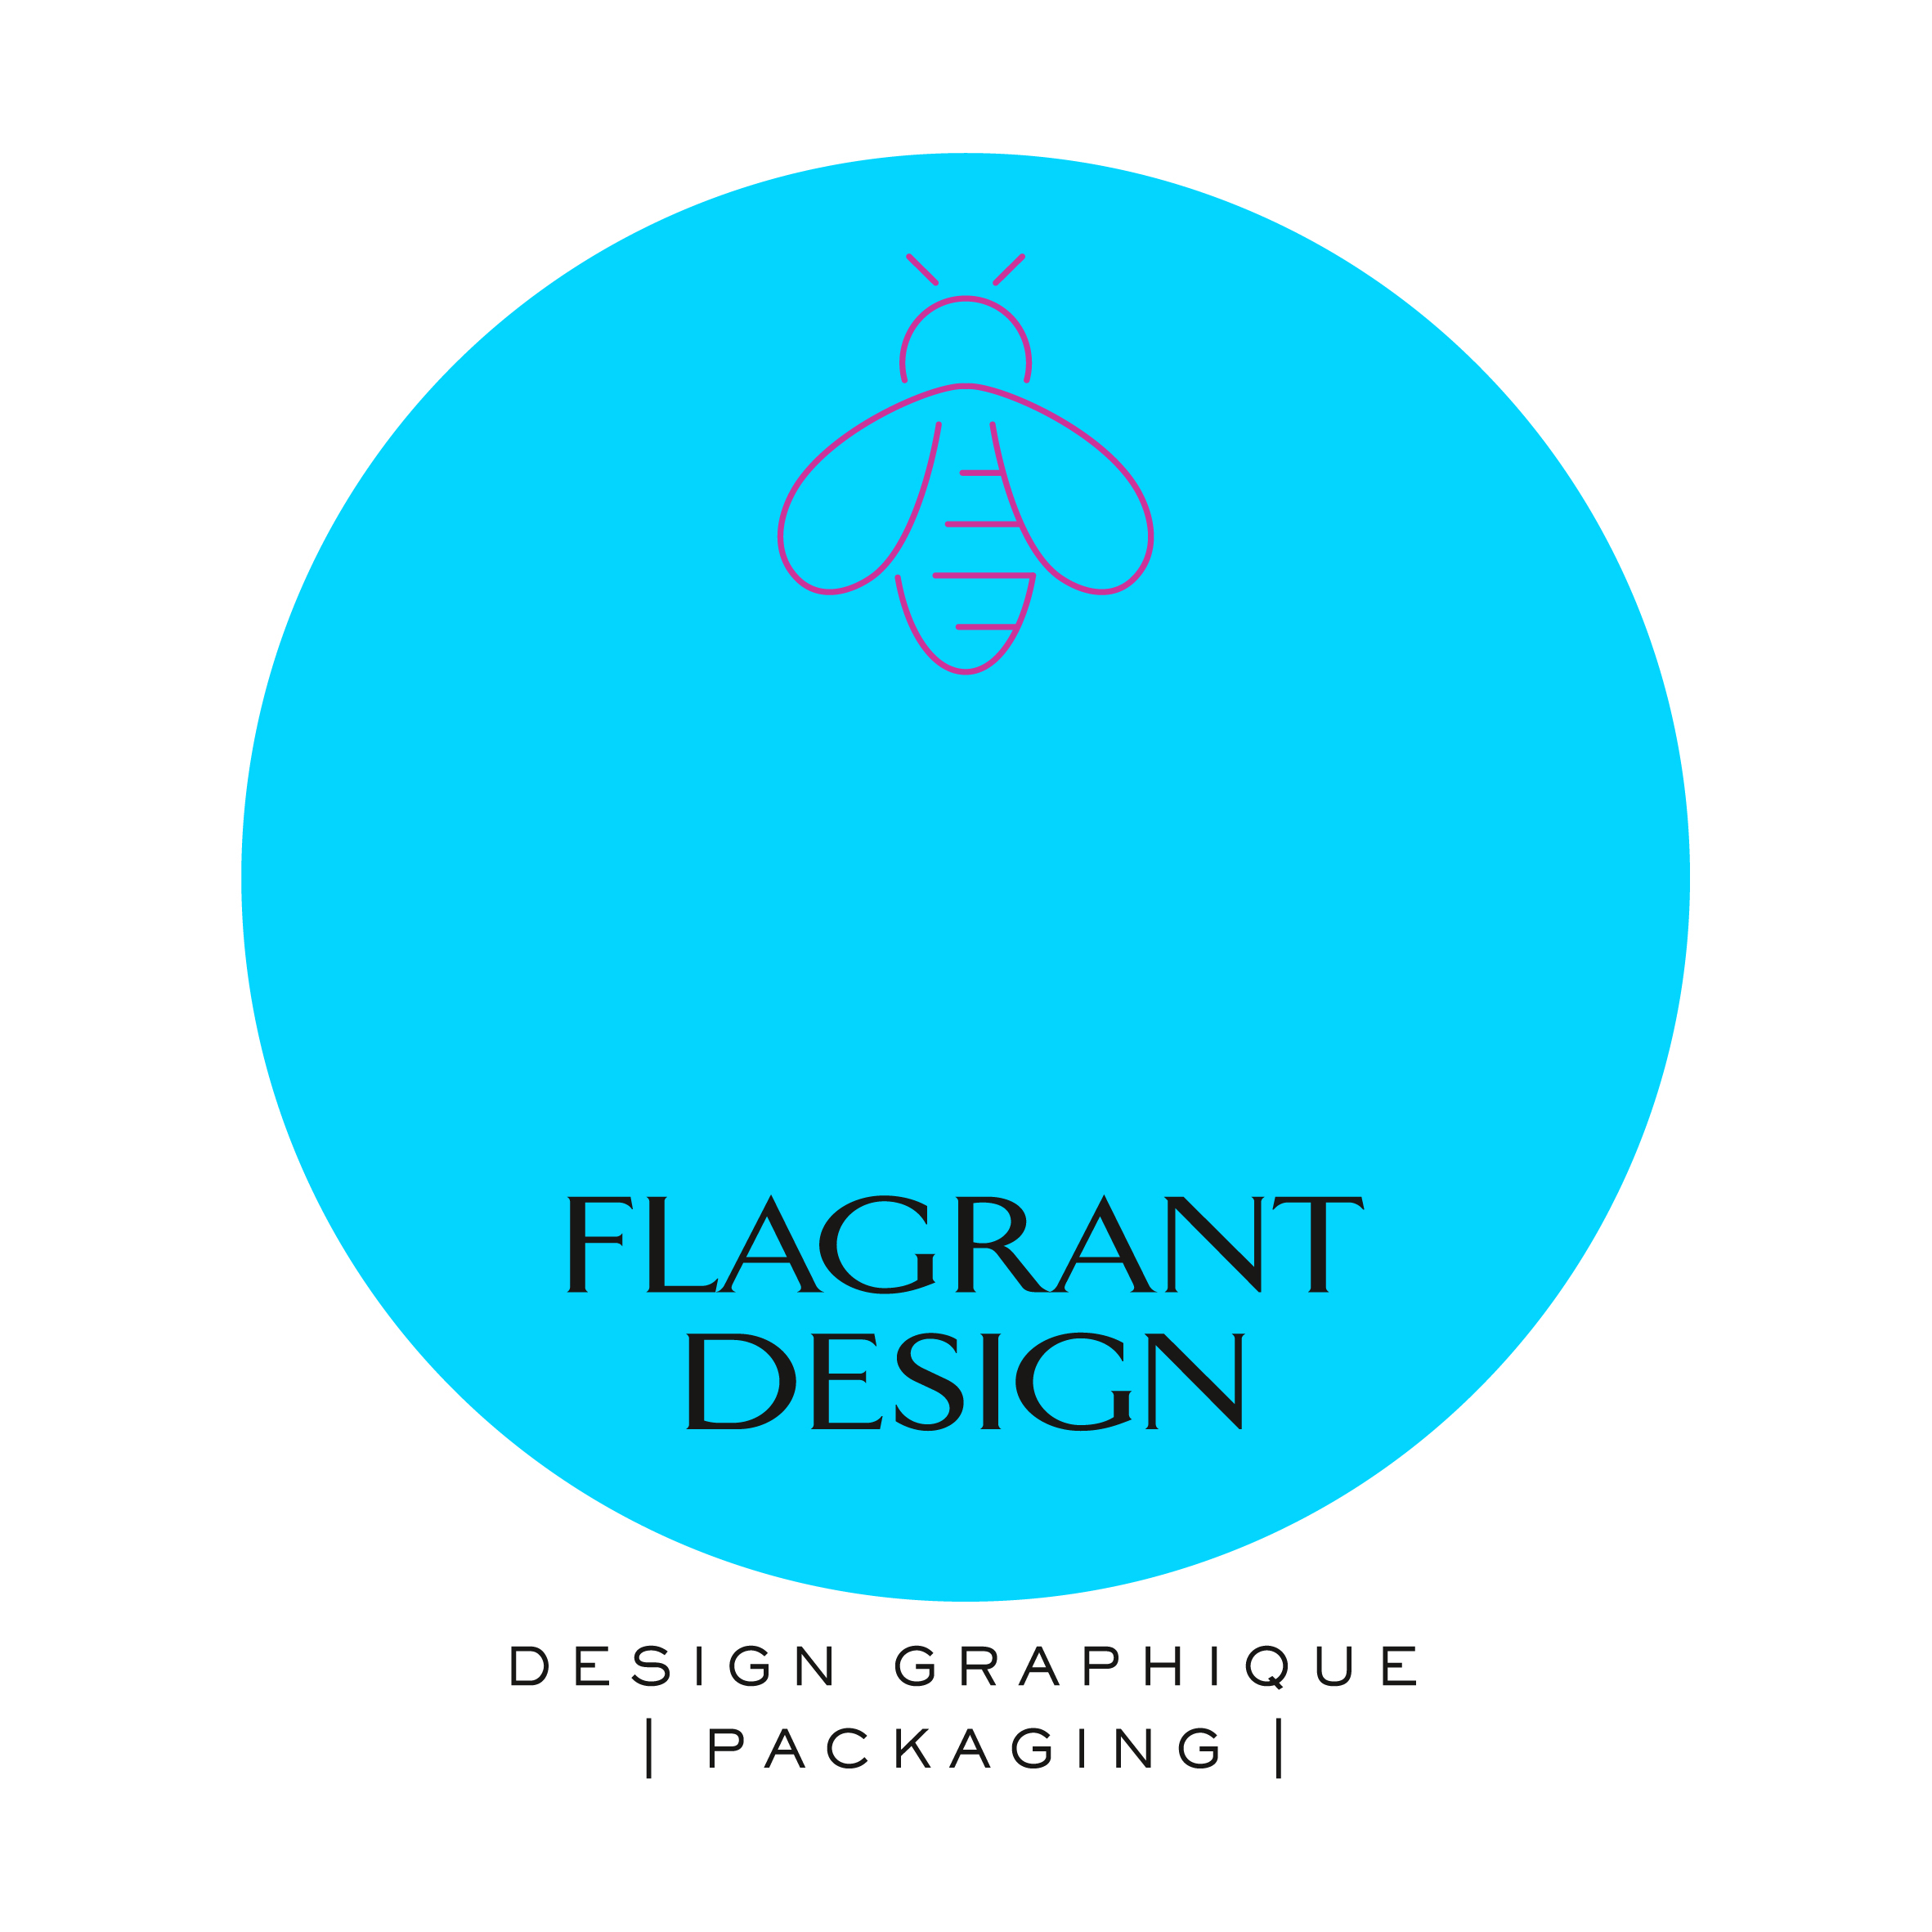 FLAGRANT DESIGN